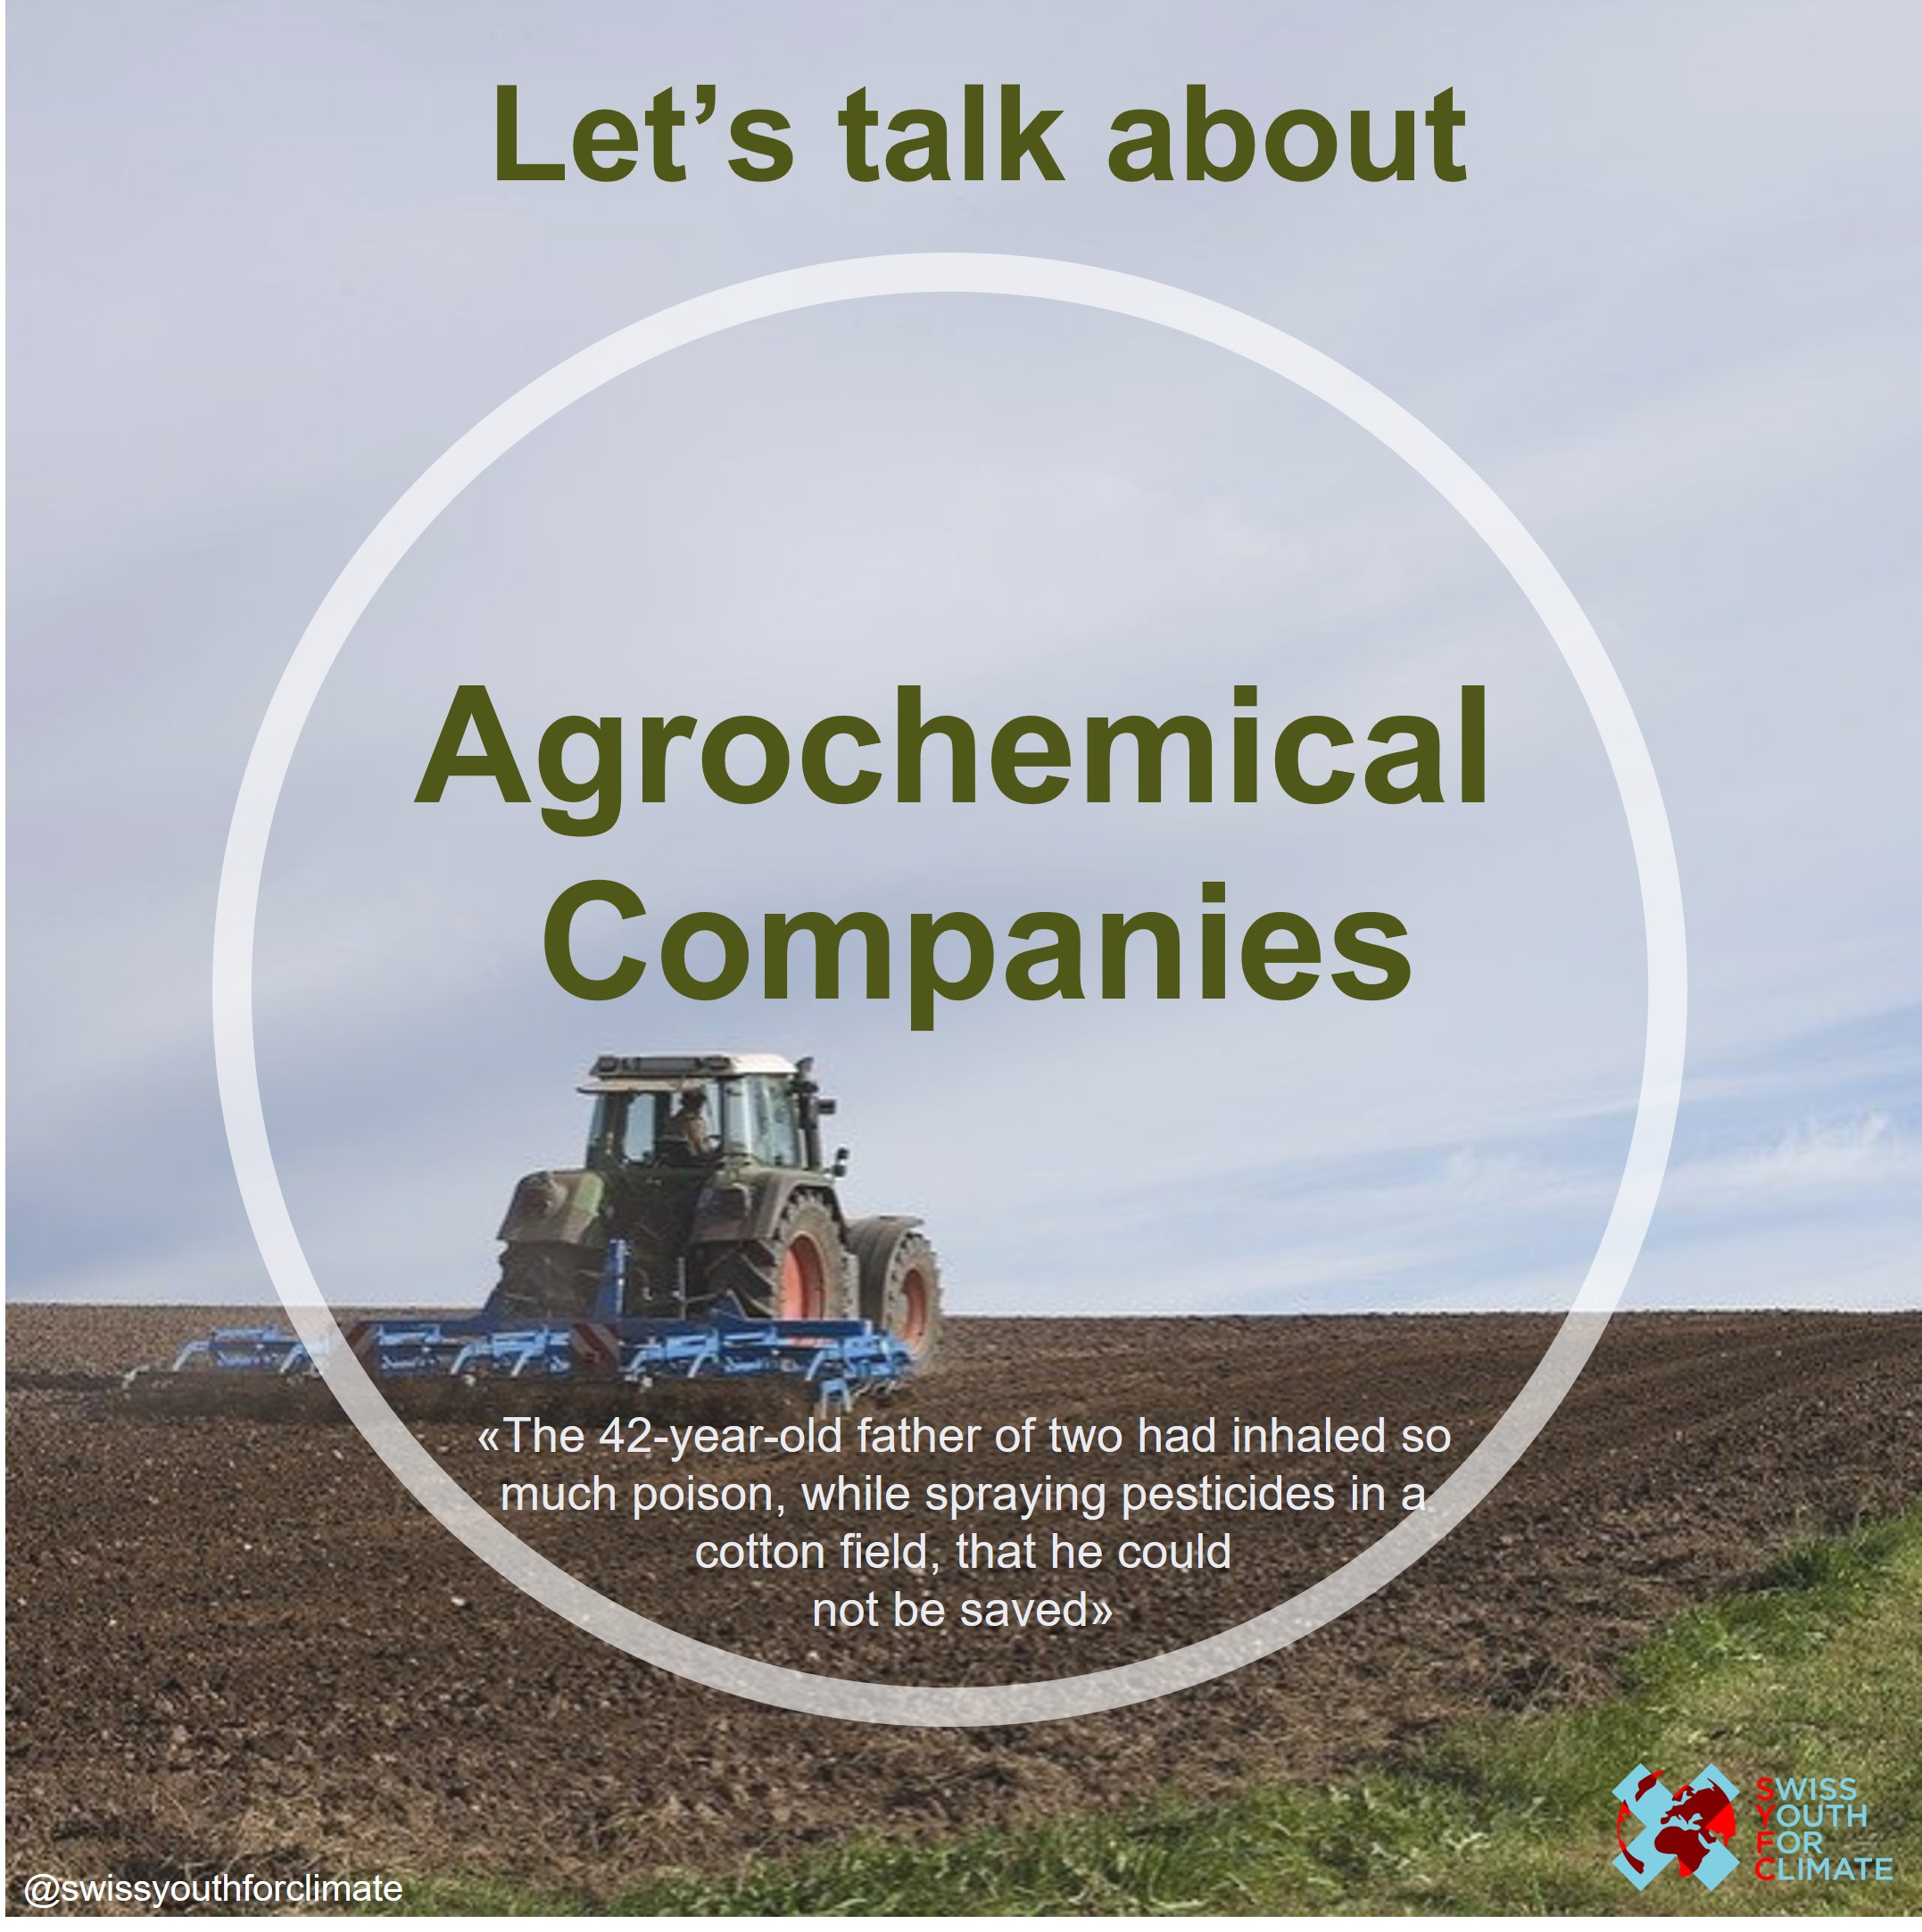 AgrochemicalCompanies